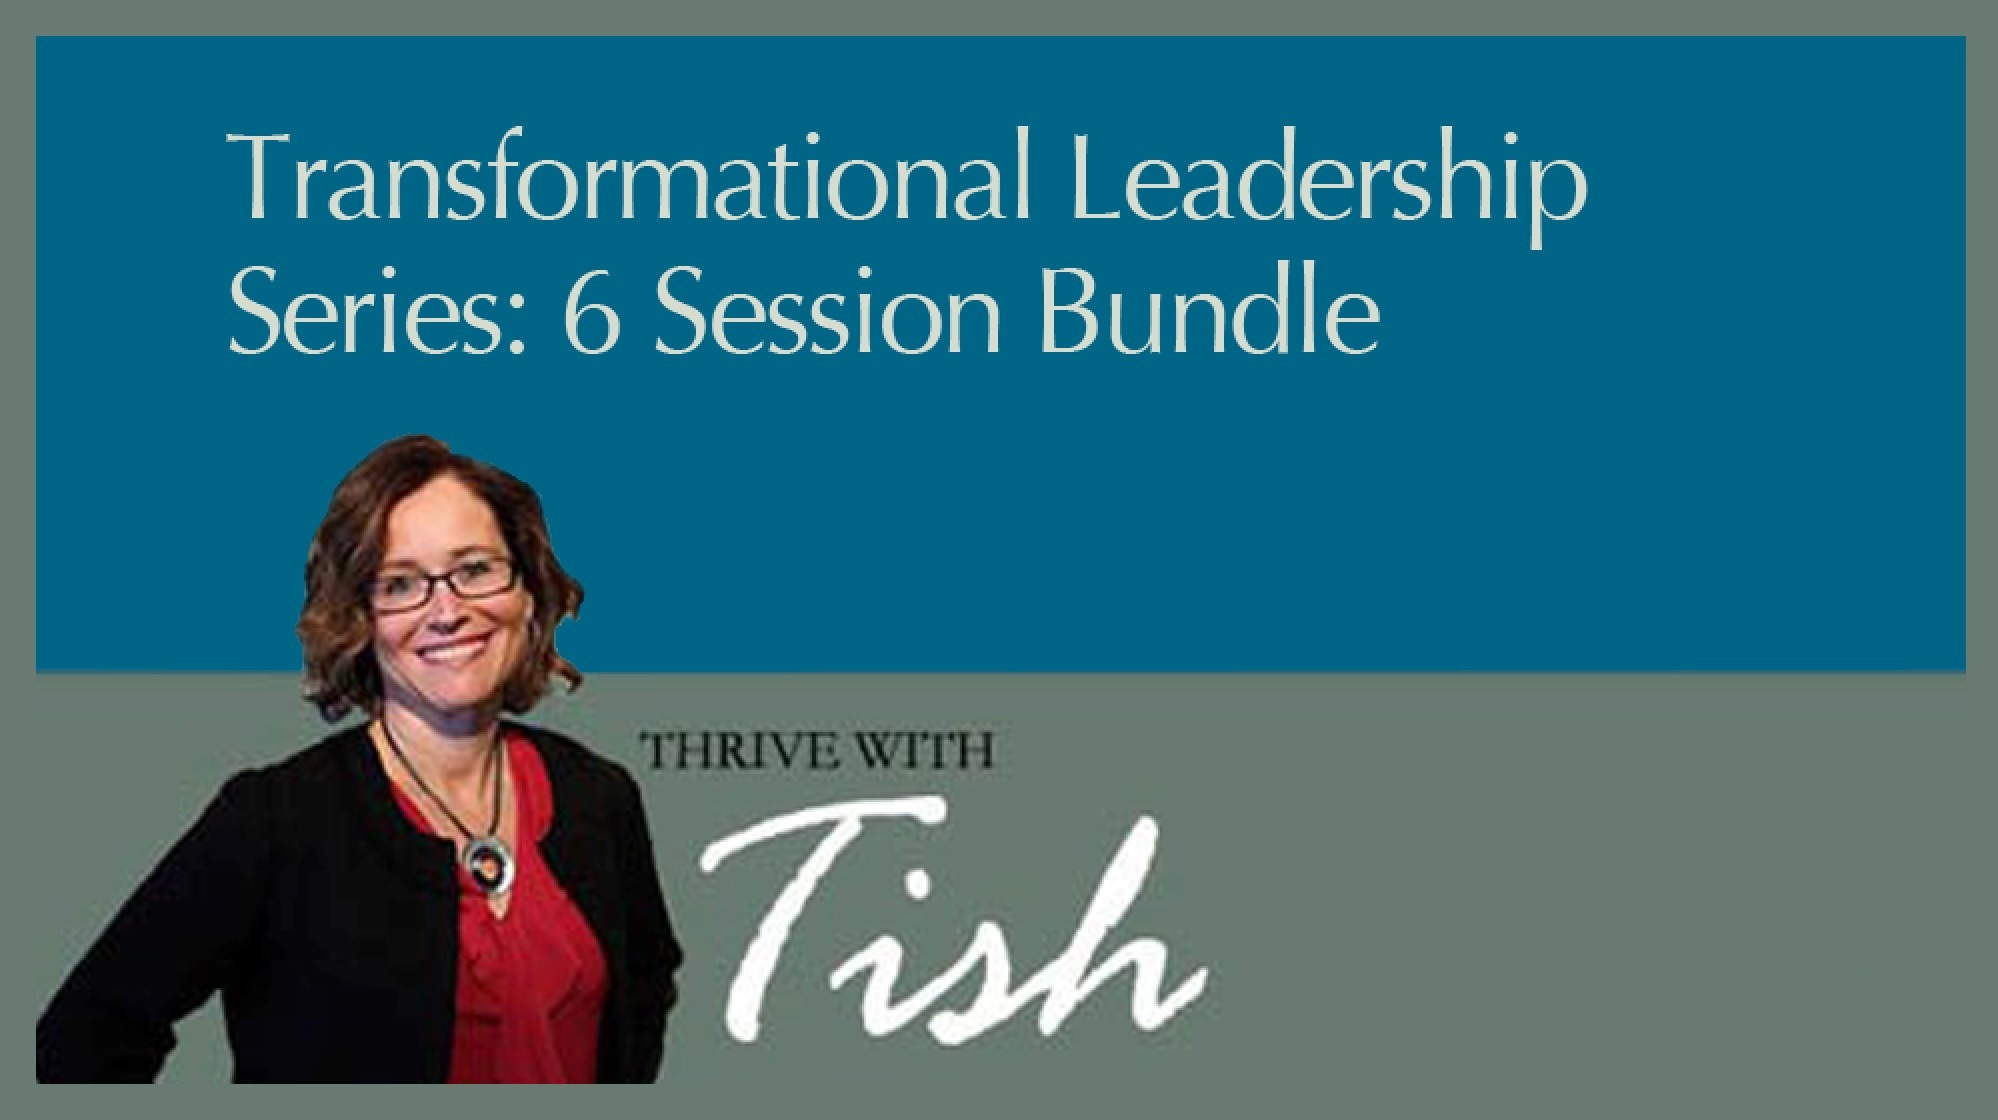 Transformational Leadership Series 6 Session Bundle